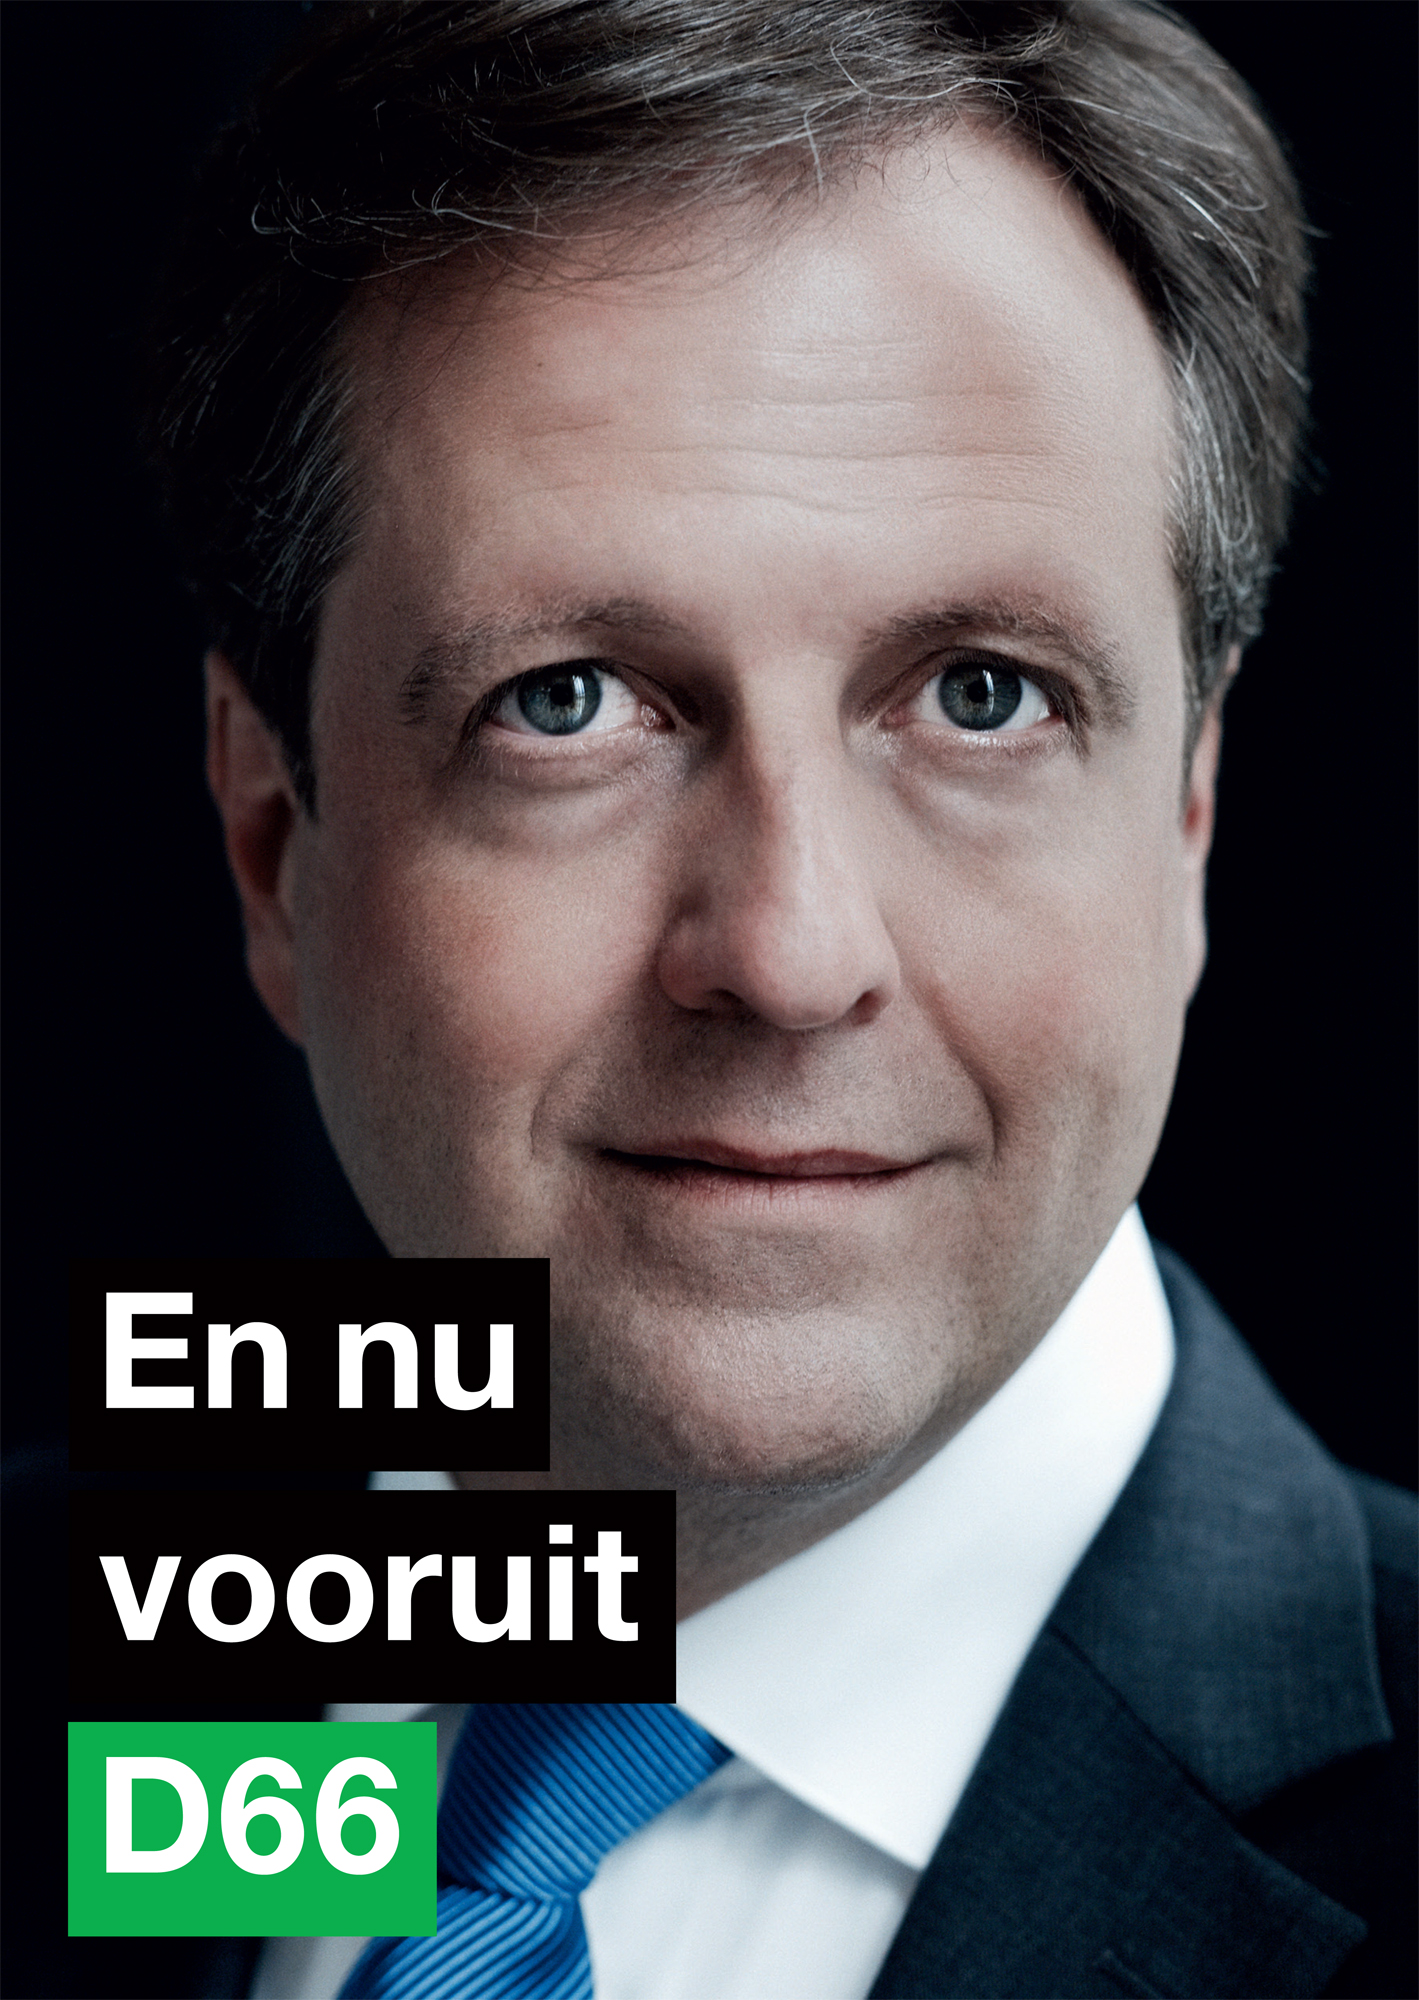 Dutch Lib Dem Politician Alexander Pechtold Is Known And Occasionally Satirized In The Media For Sporting These Type Of Eyes Some Campaign Posters From